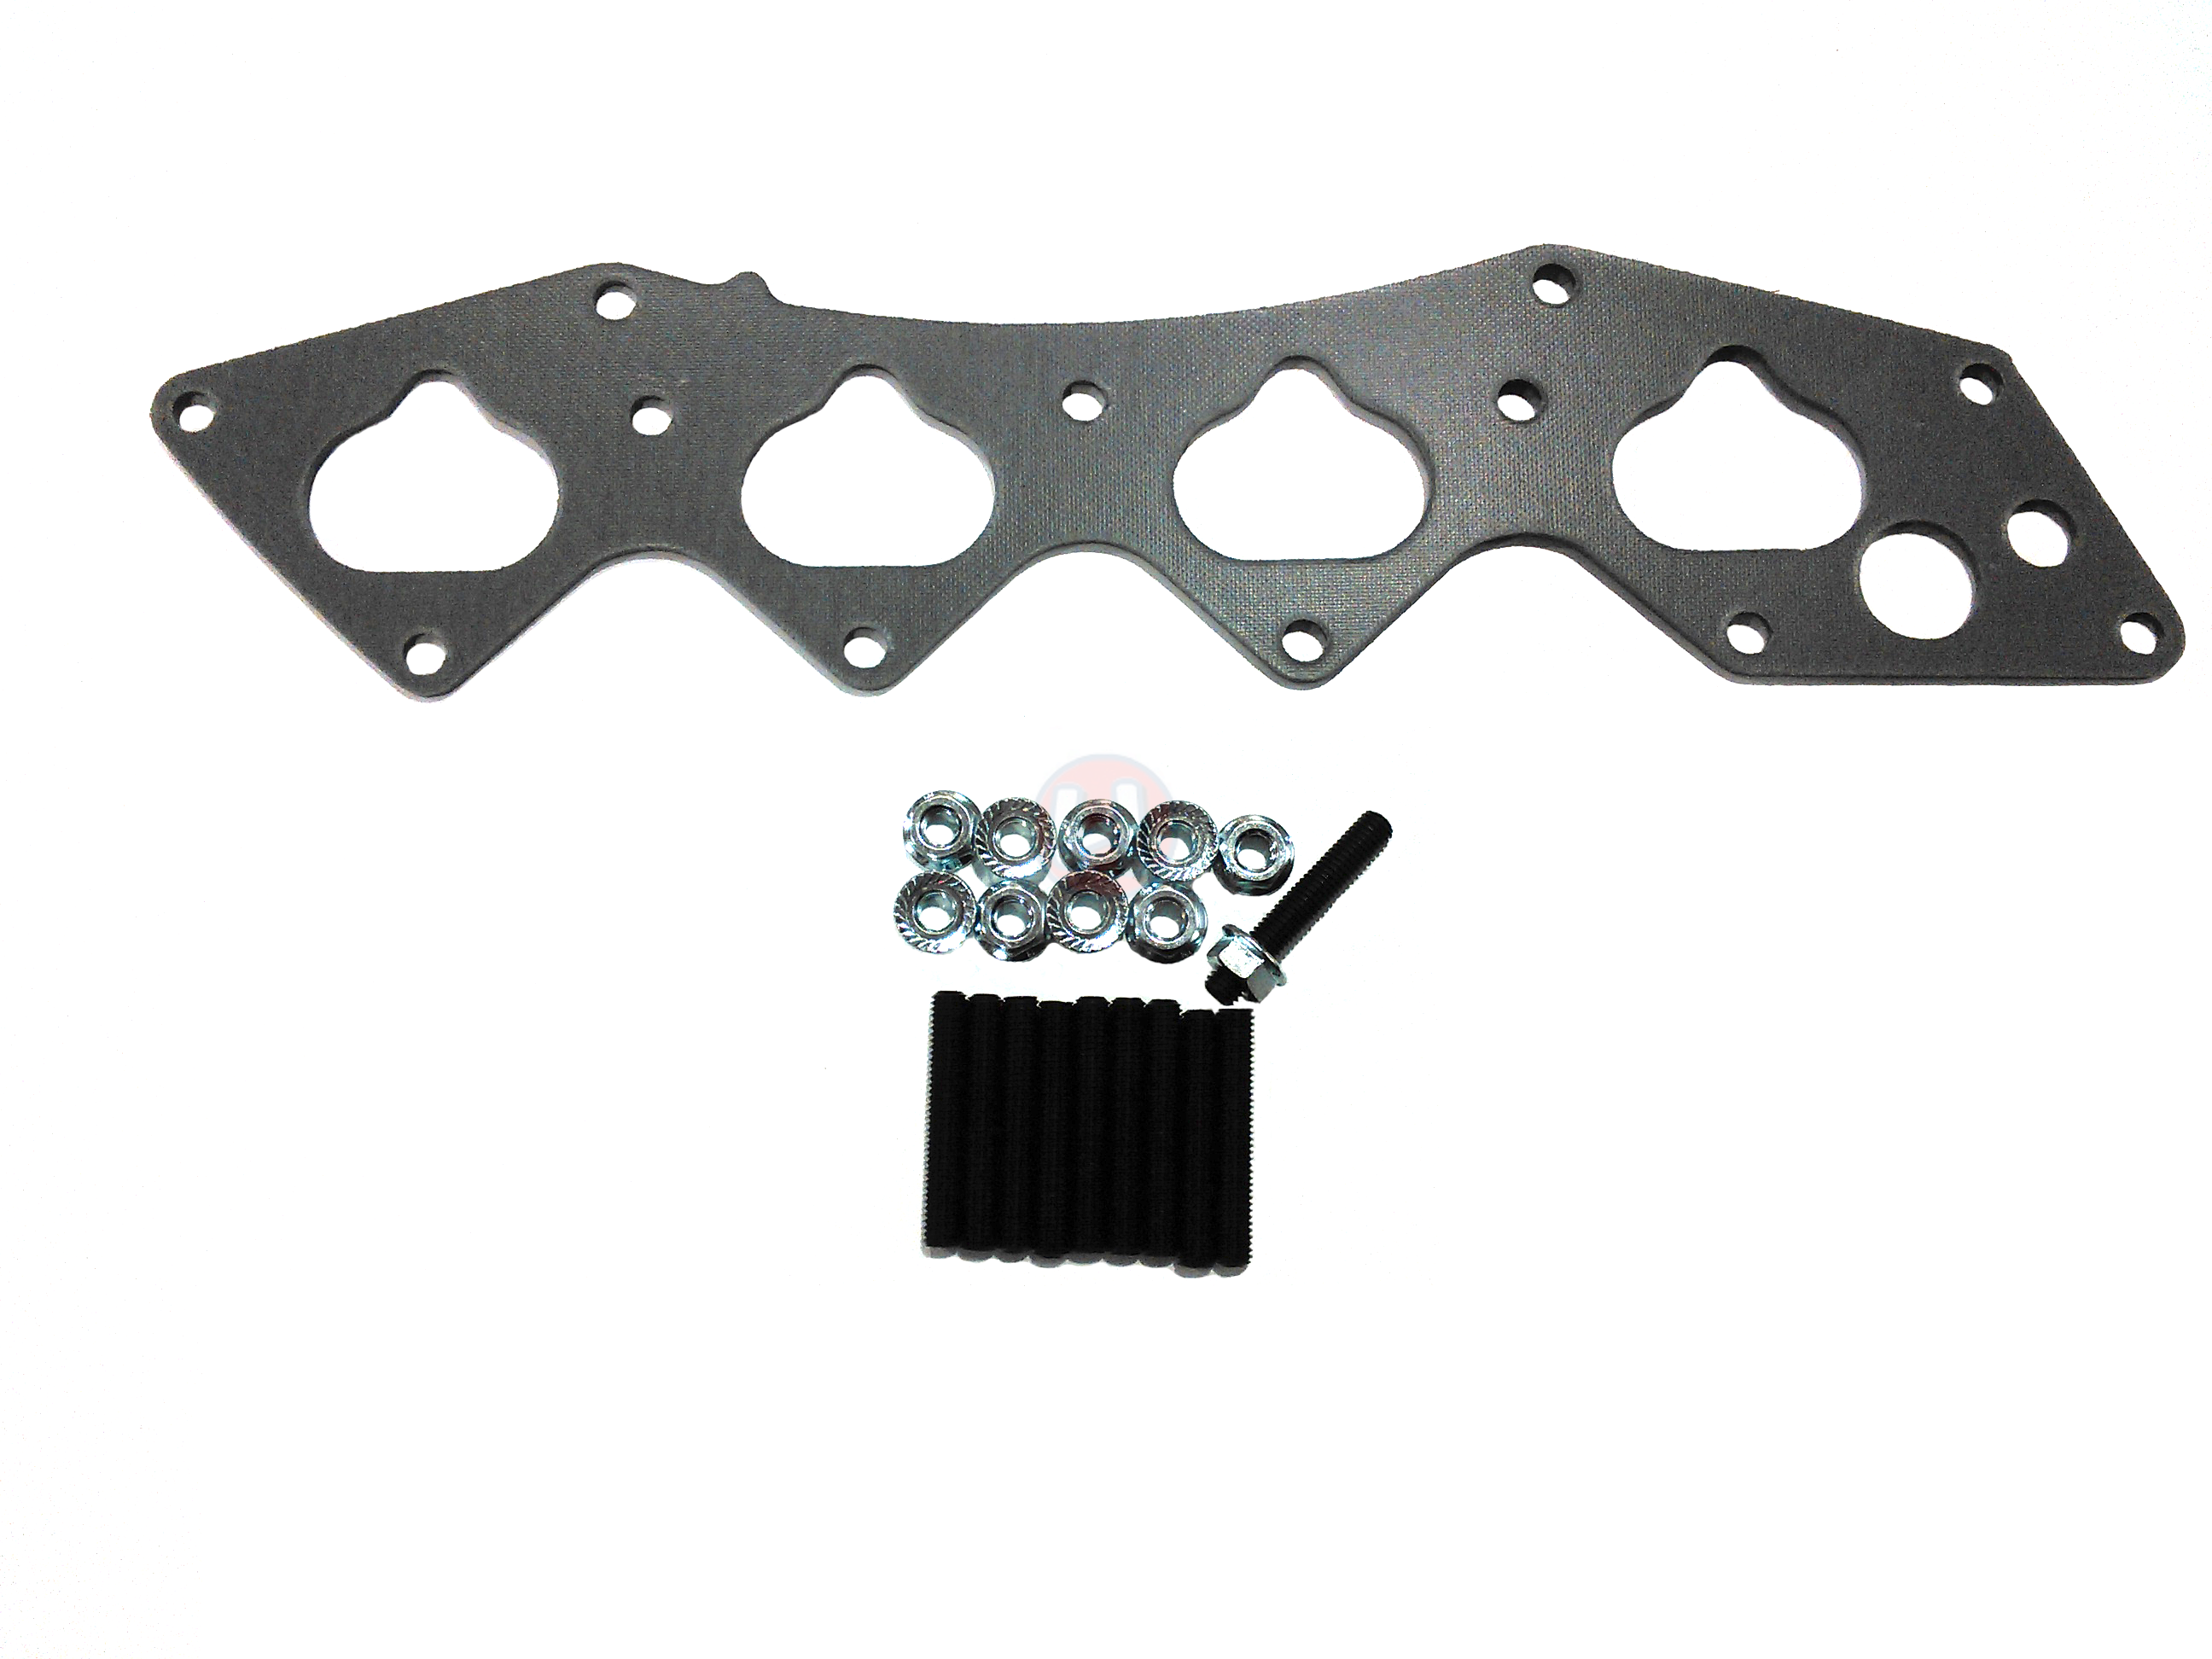 myHondaHabit Intake Manifold Gasket and Stud Kit for Integra LS B18